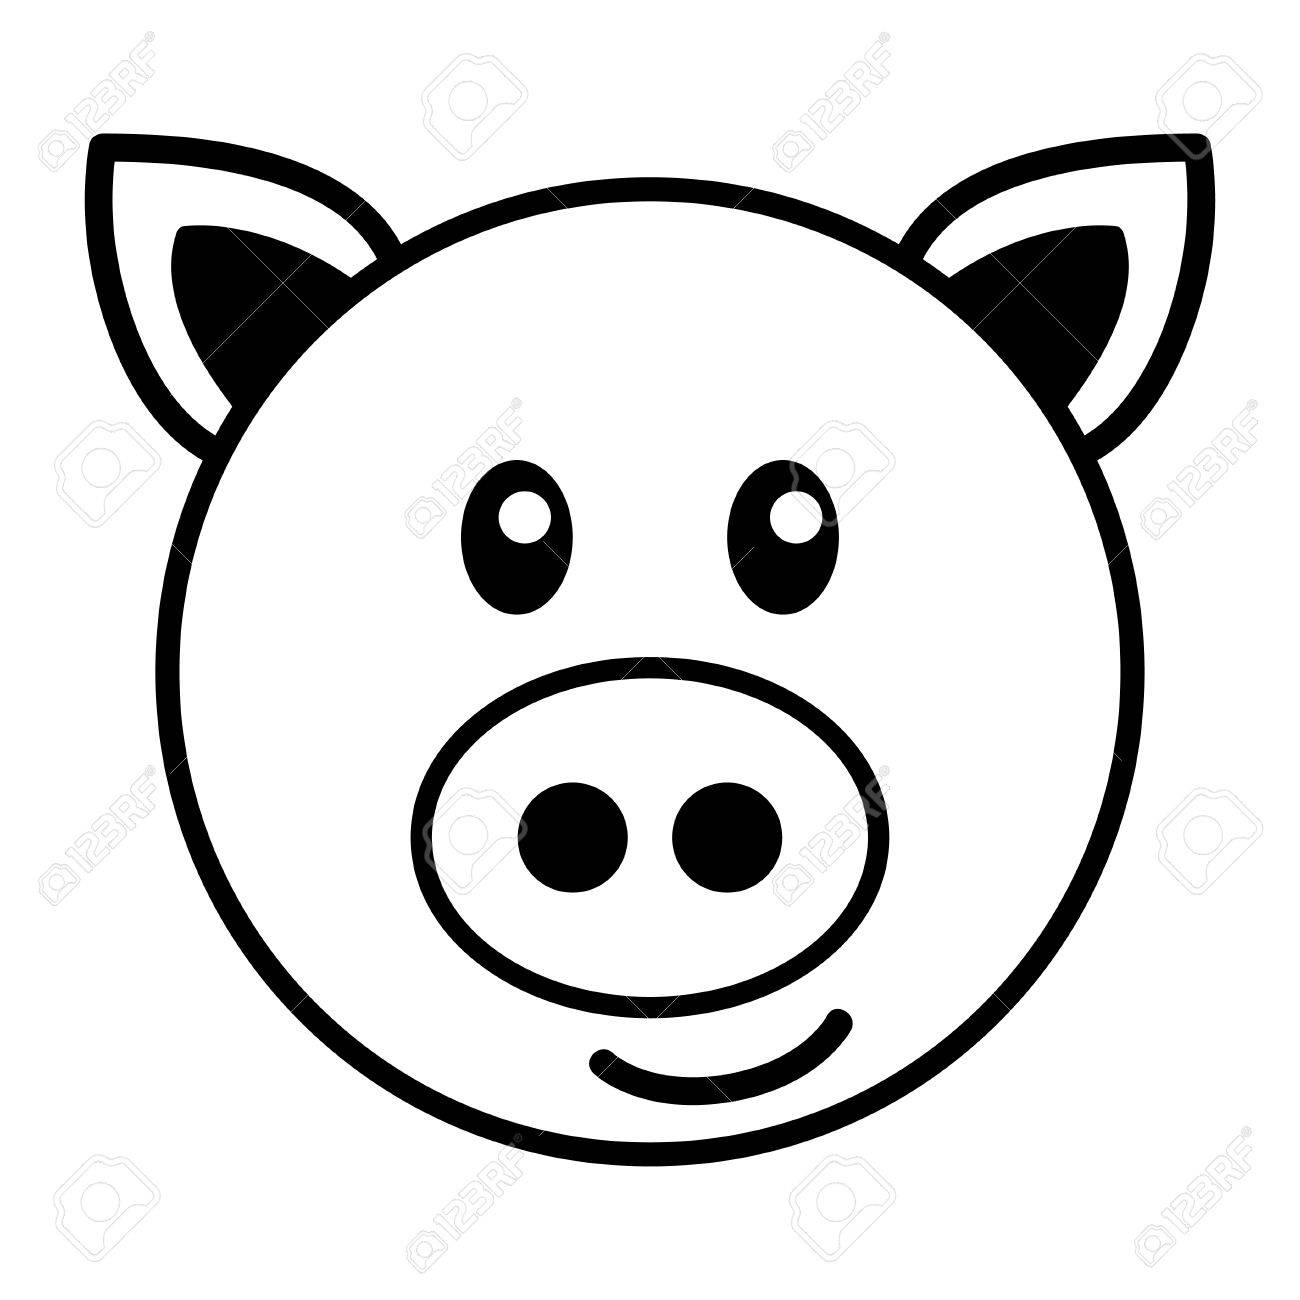 Pig Drawing Images At Getdrawings